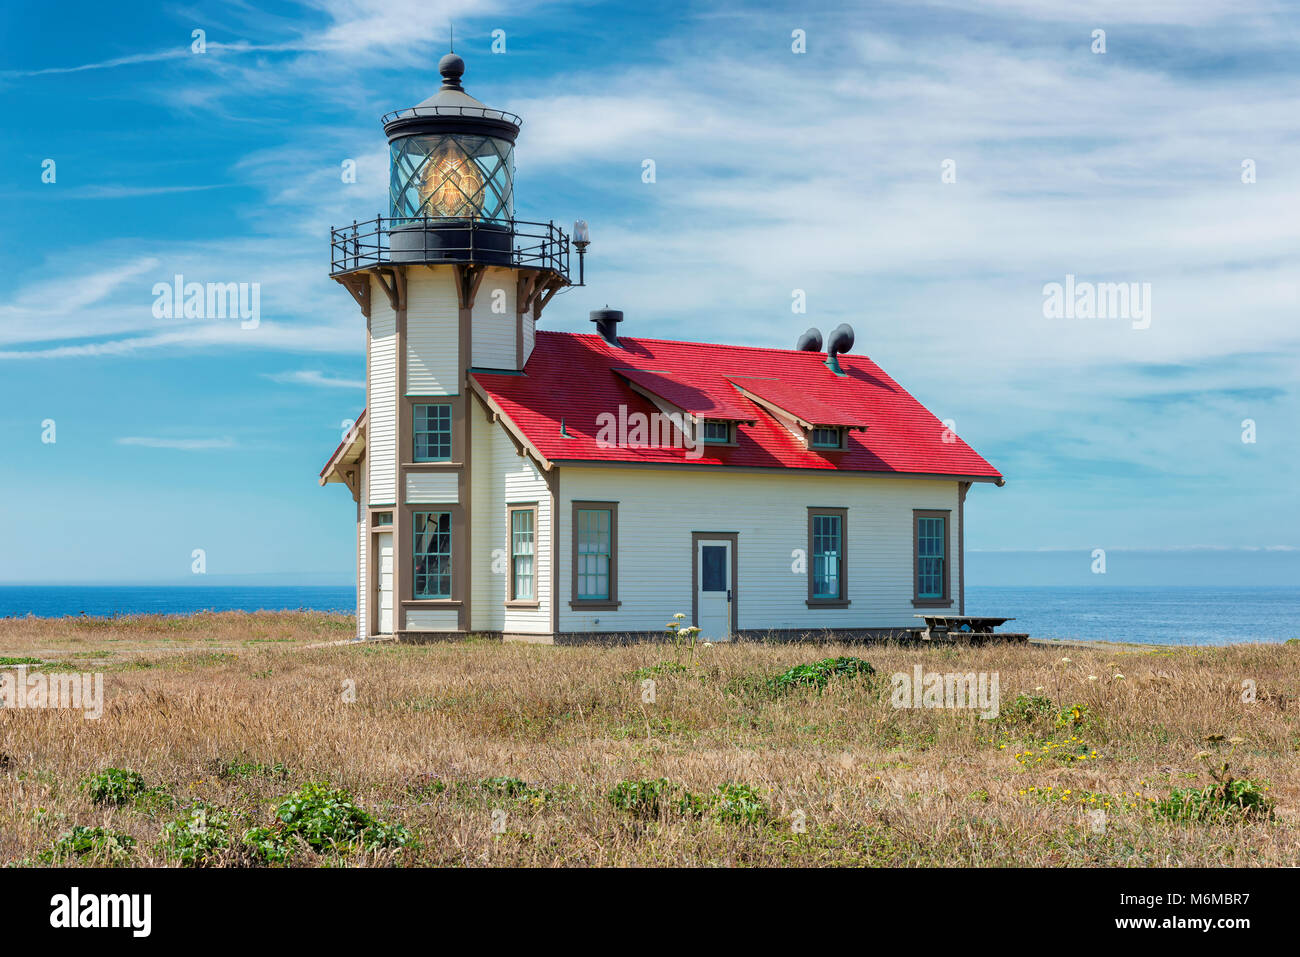 Point Cabrillo Light Station State Historic Park, Mendocino County, California. - Stock Image